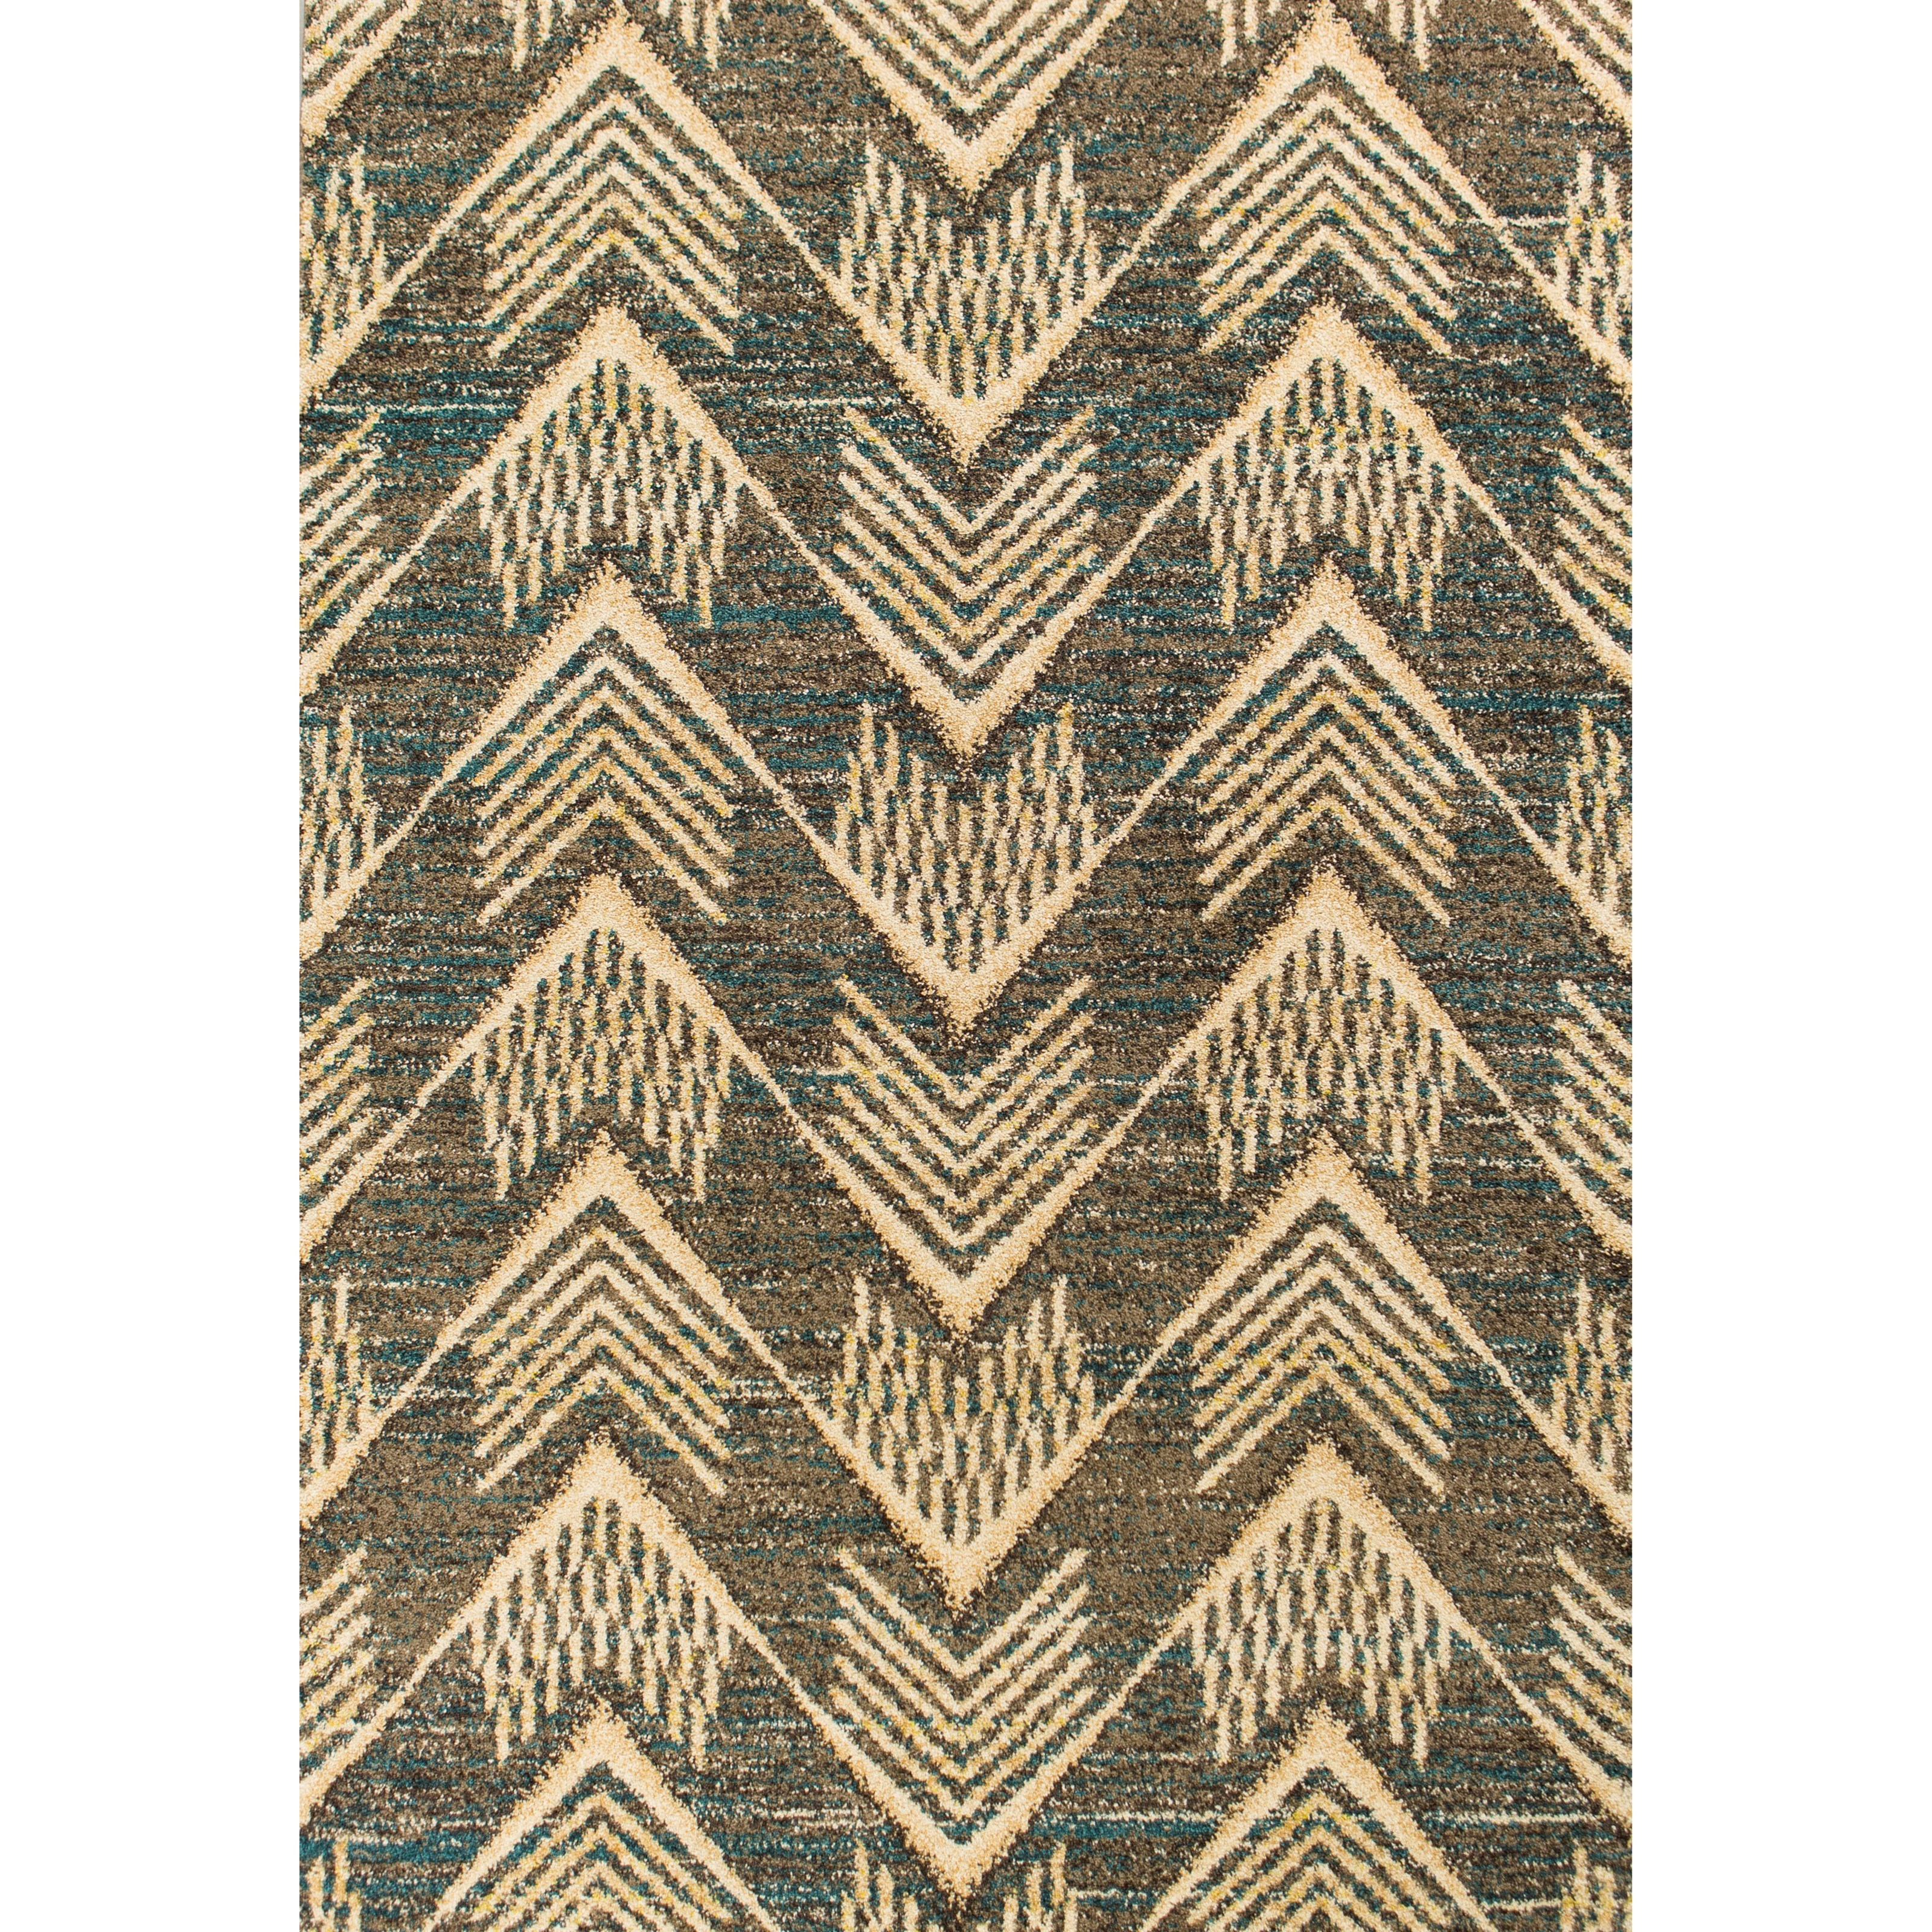 "Barcelona 4'11"" X 2'7"" Area Rug by Kas at Zak's Home"